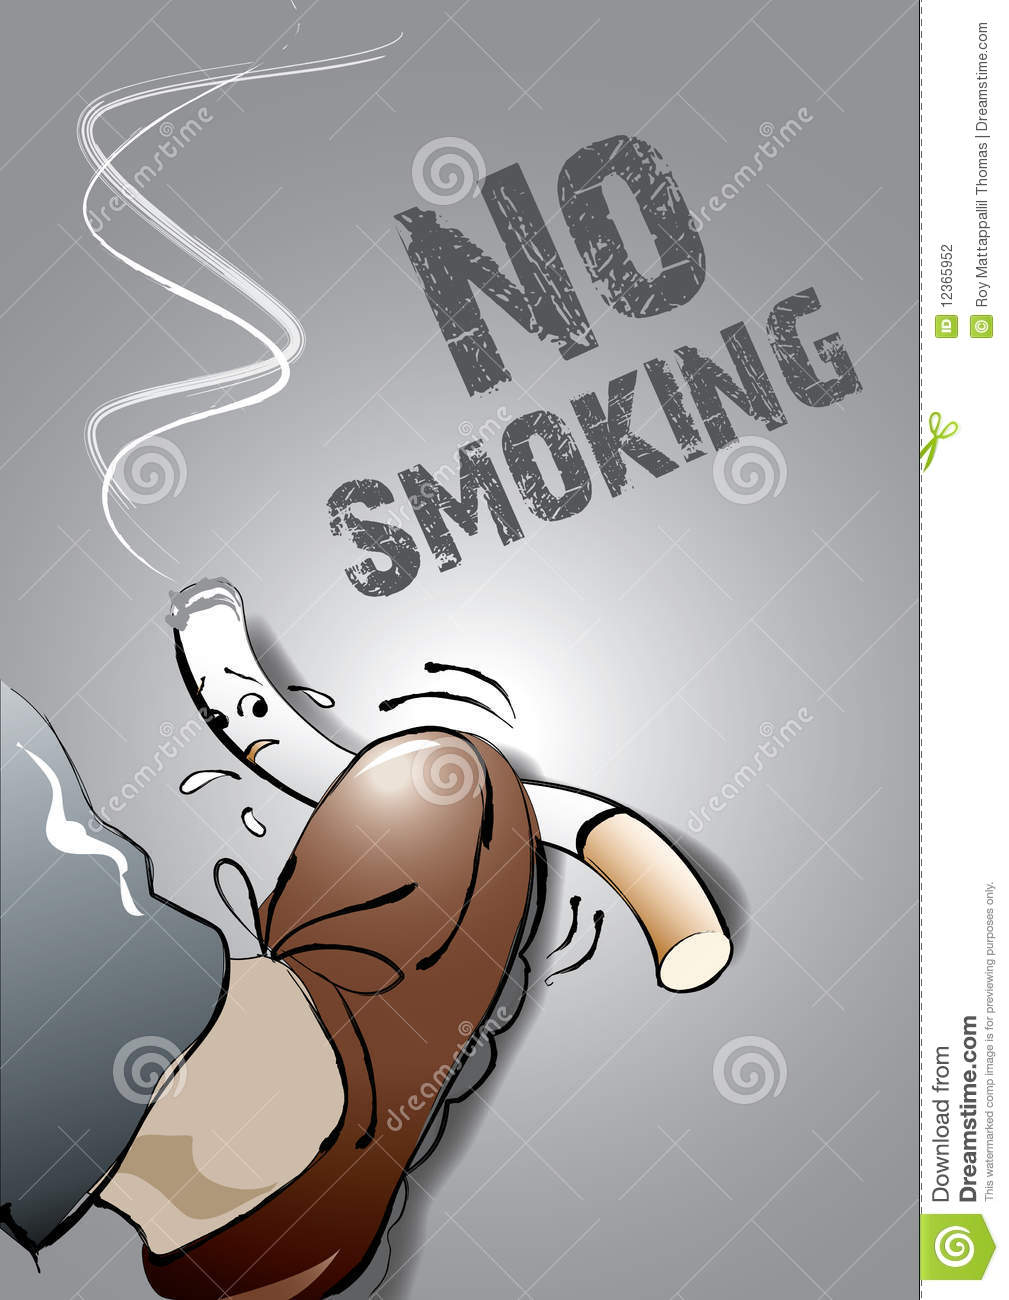 About anti smoking think, that